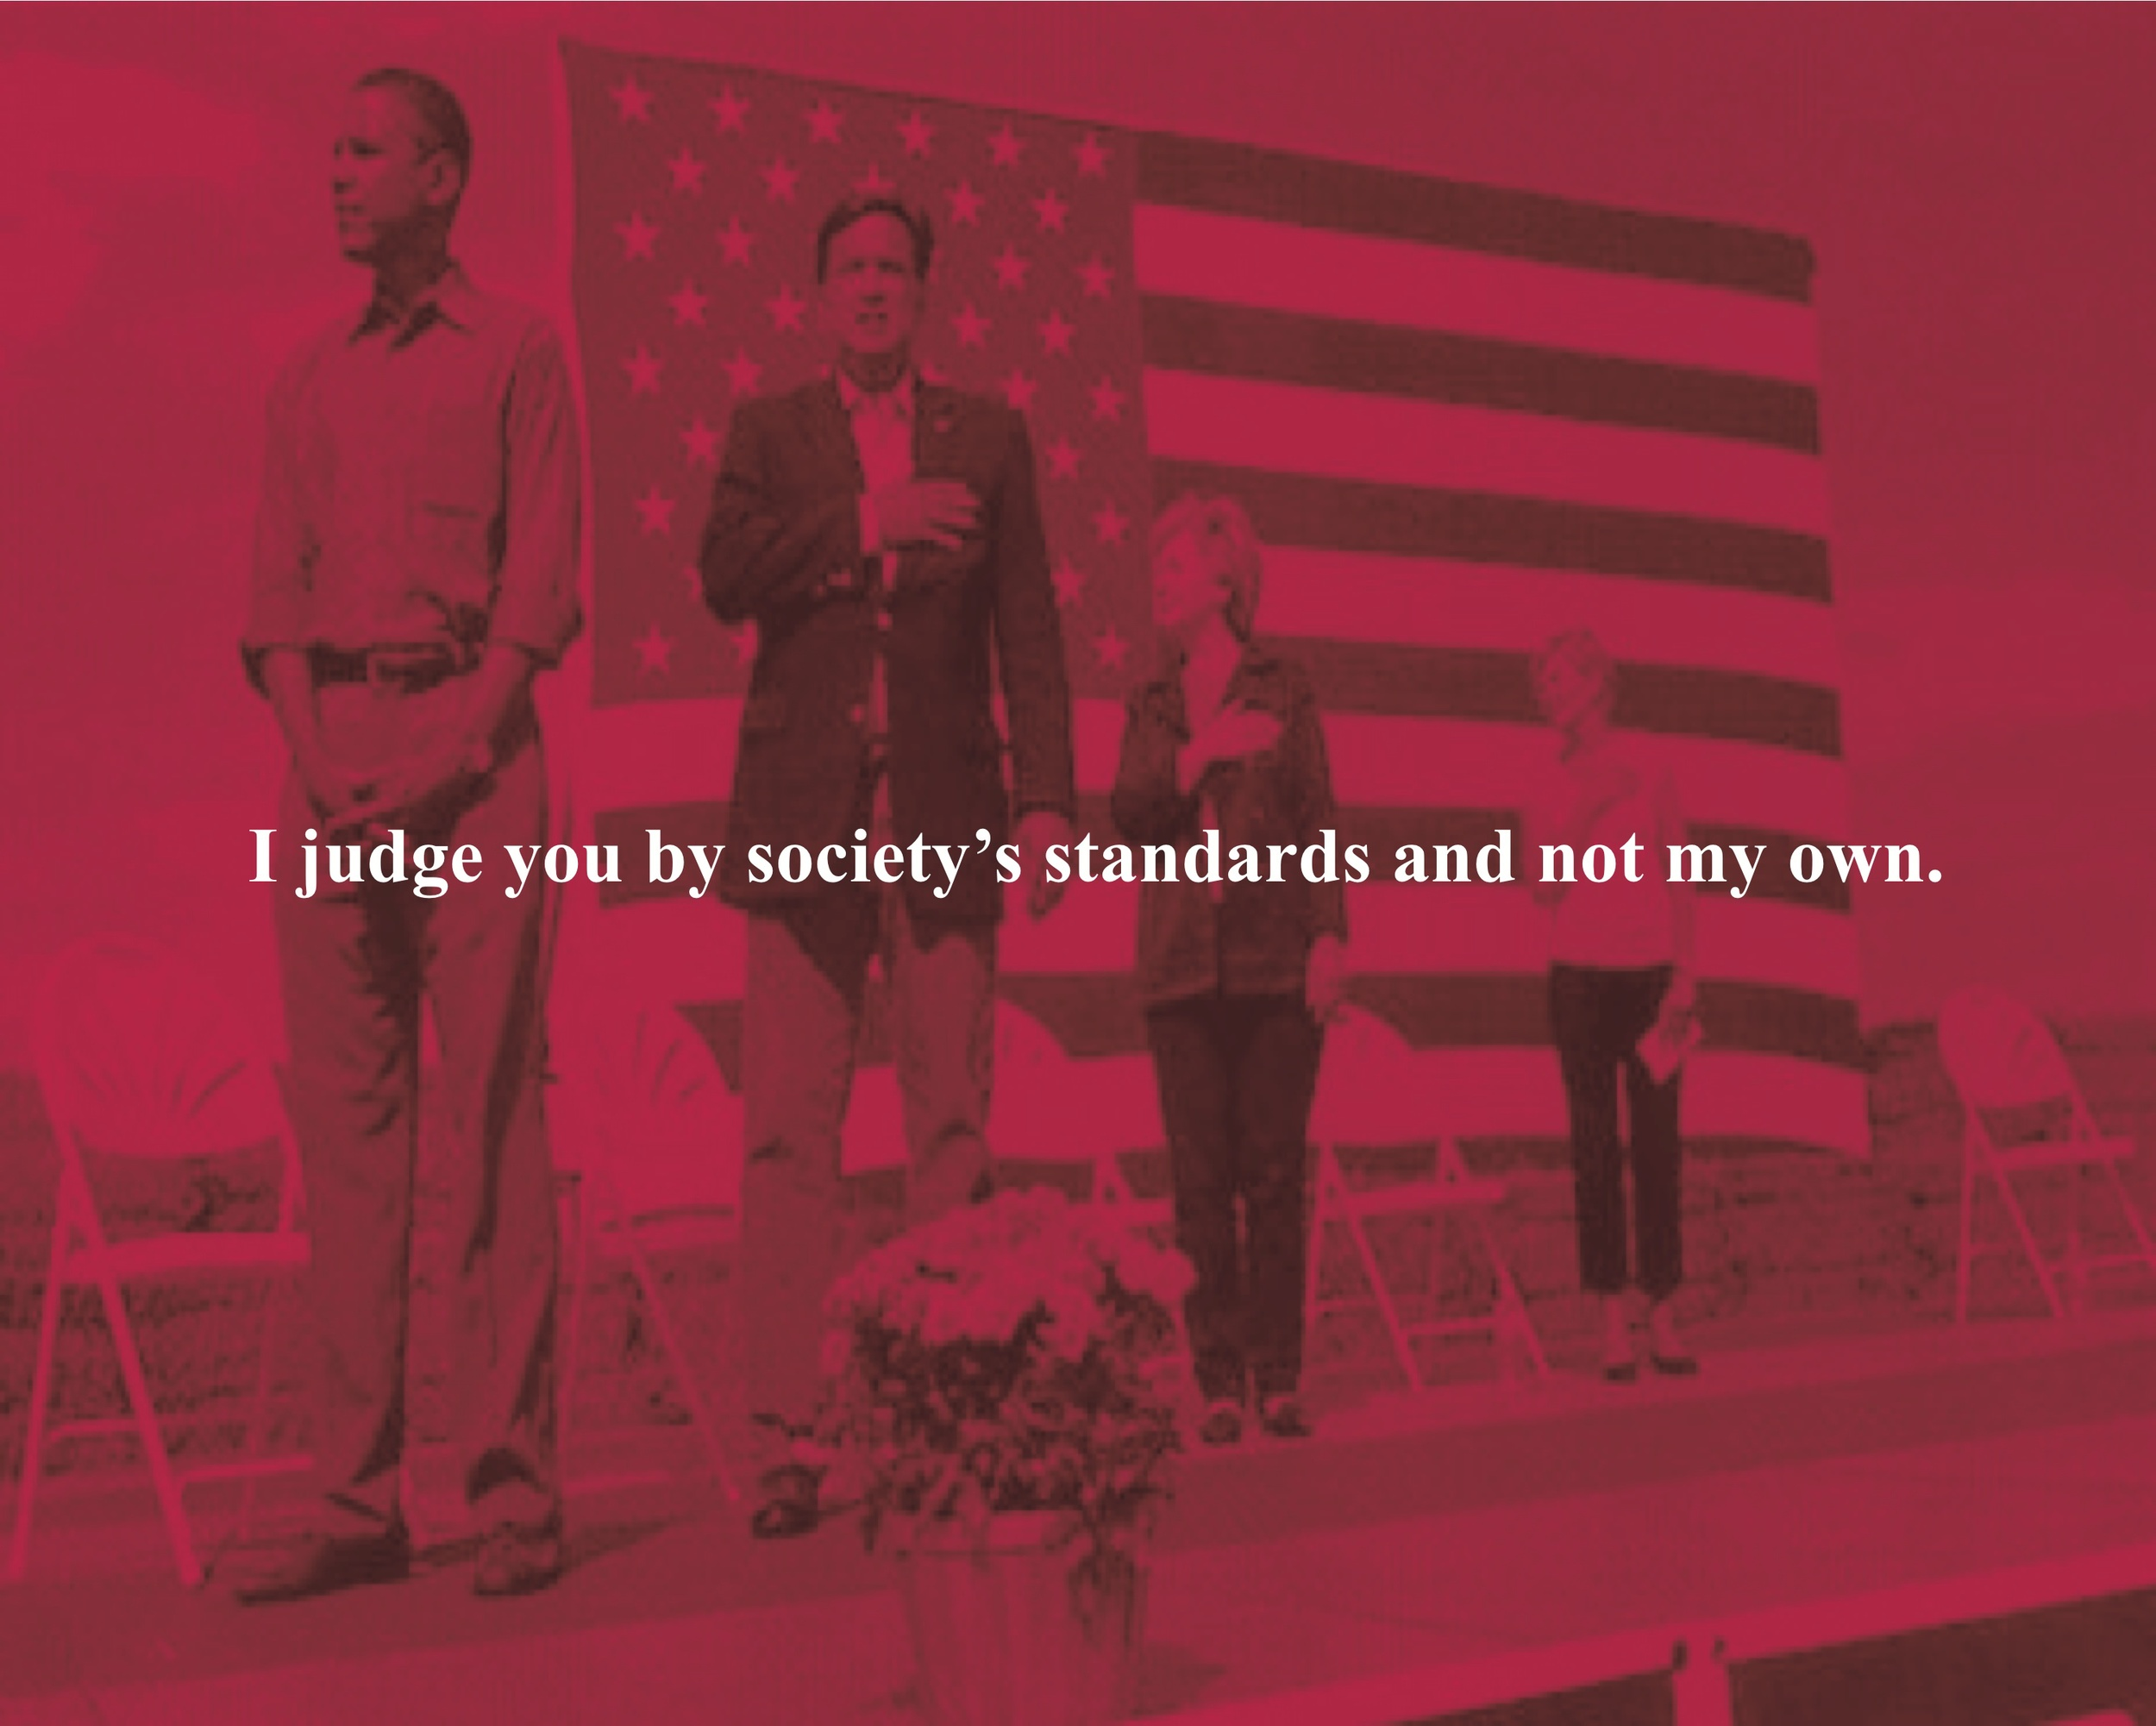 The Honest Truth 6 I Judge You By Society's Standards.jpg